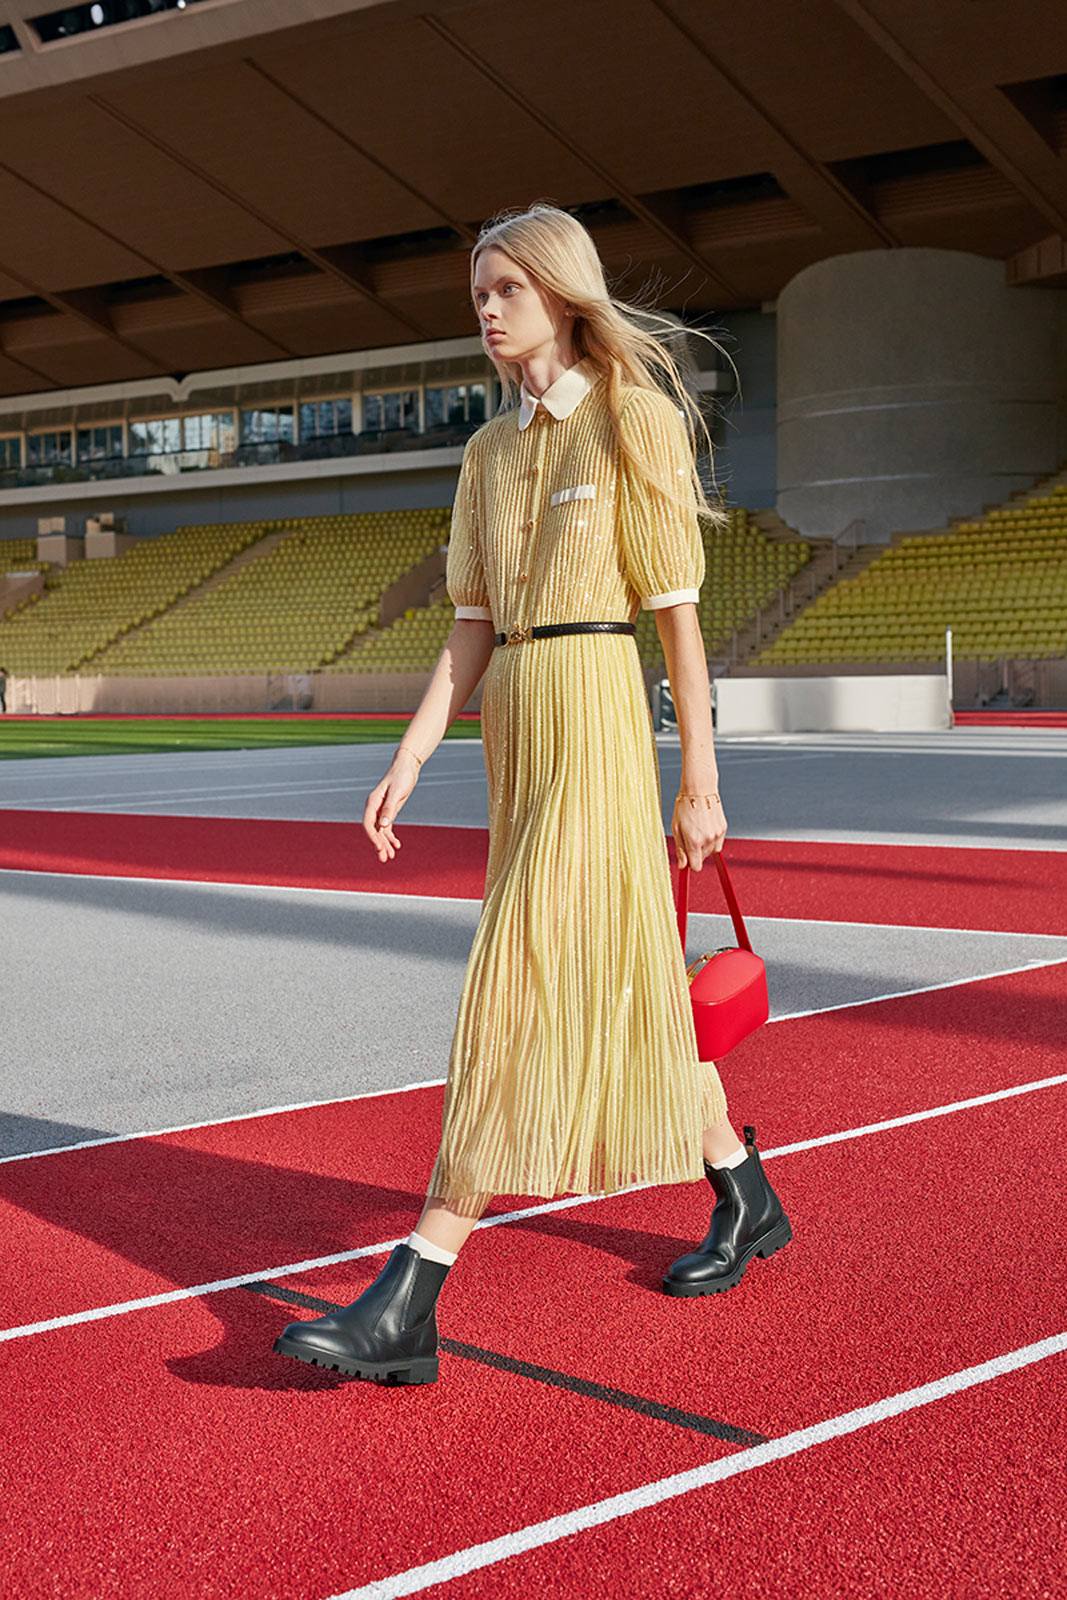 When they go low, we go high: Celine's optimistic vision of post-pandemic fashion